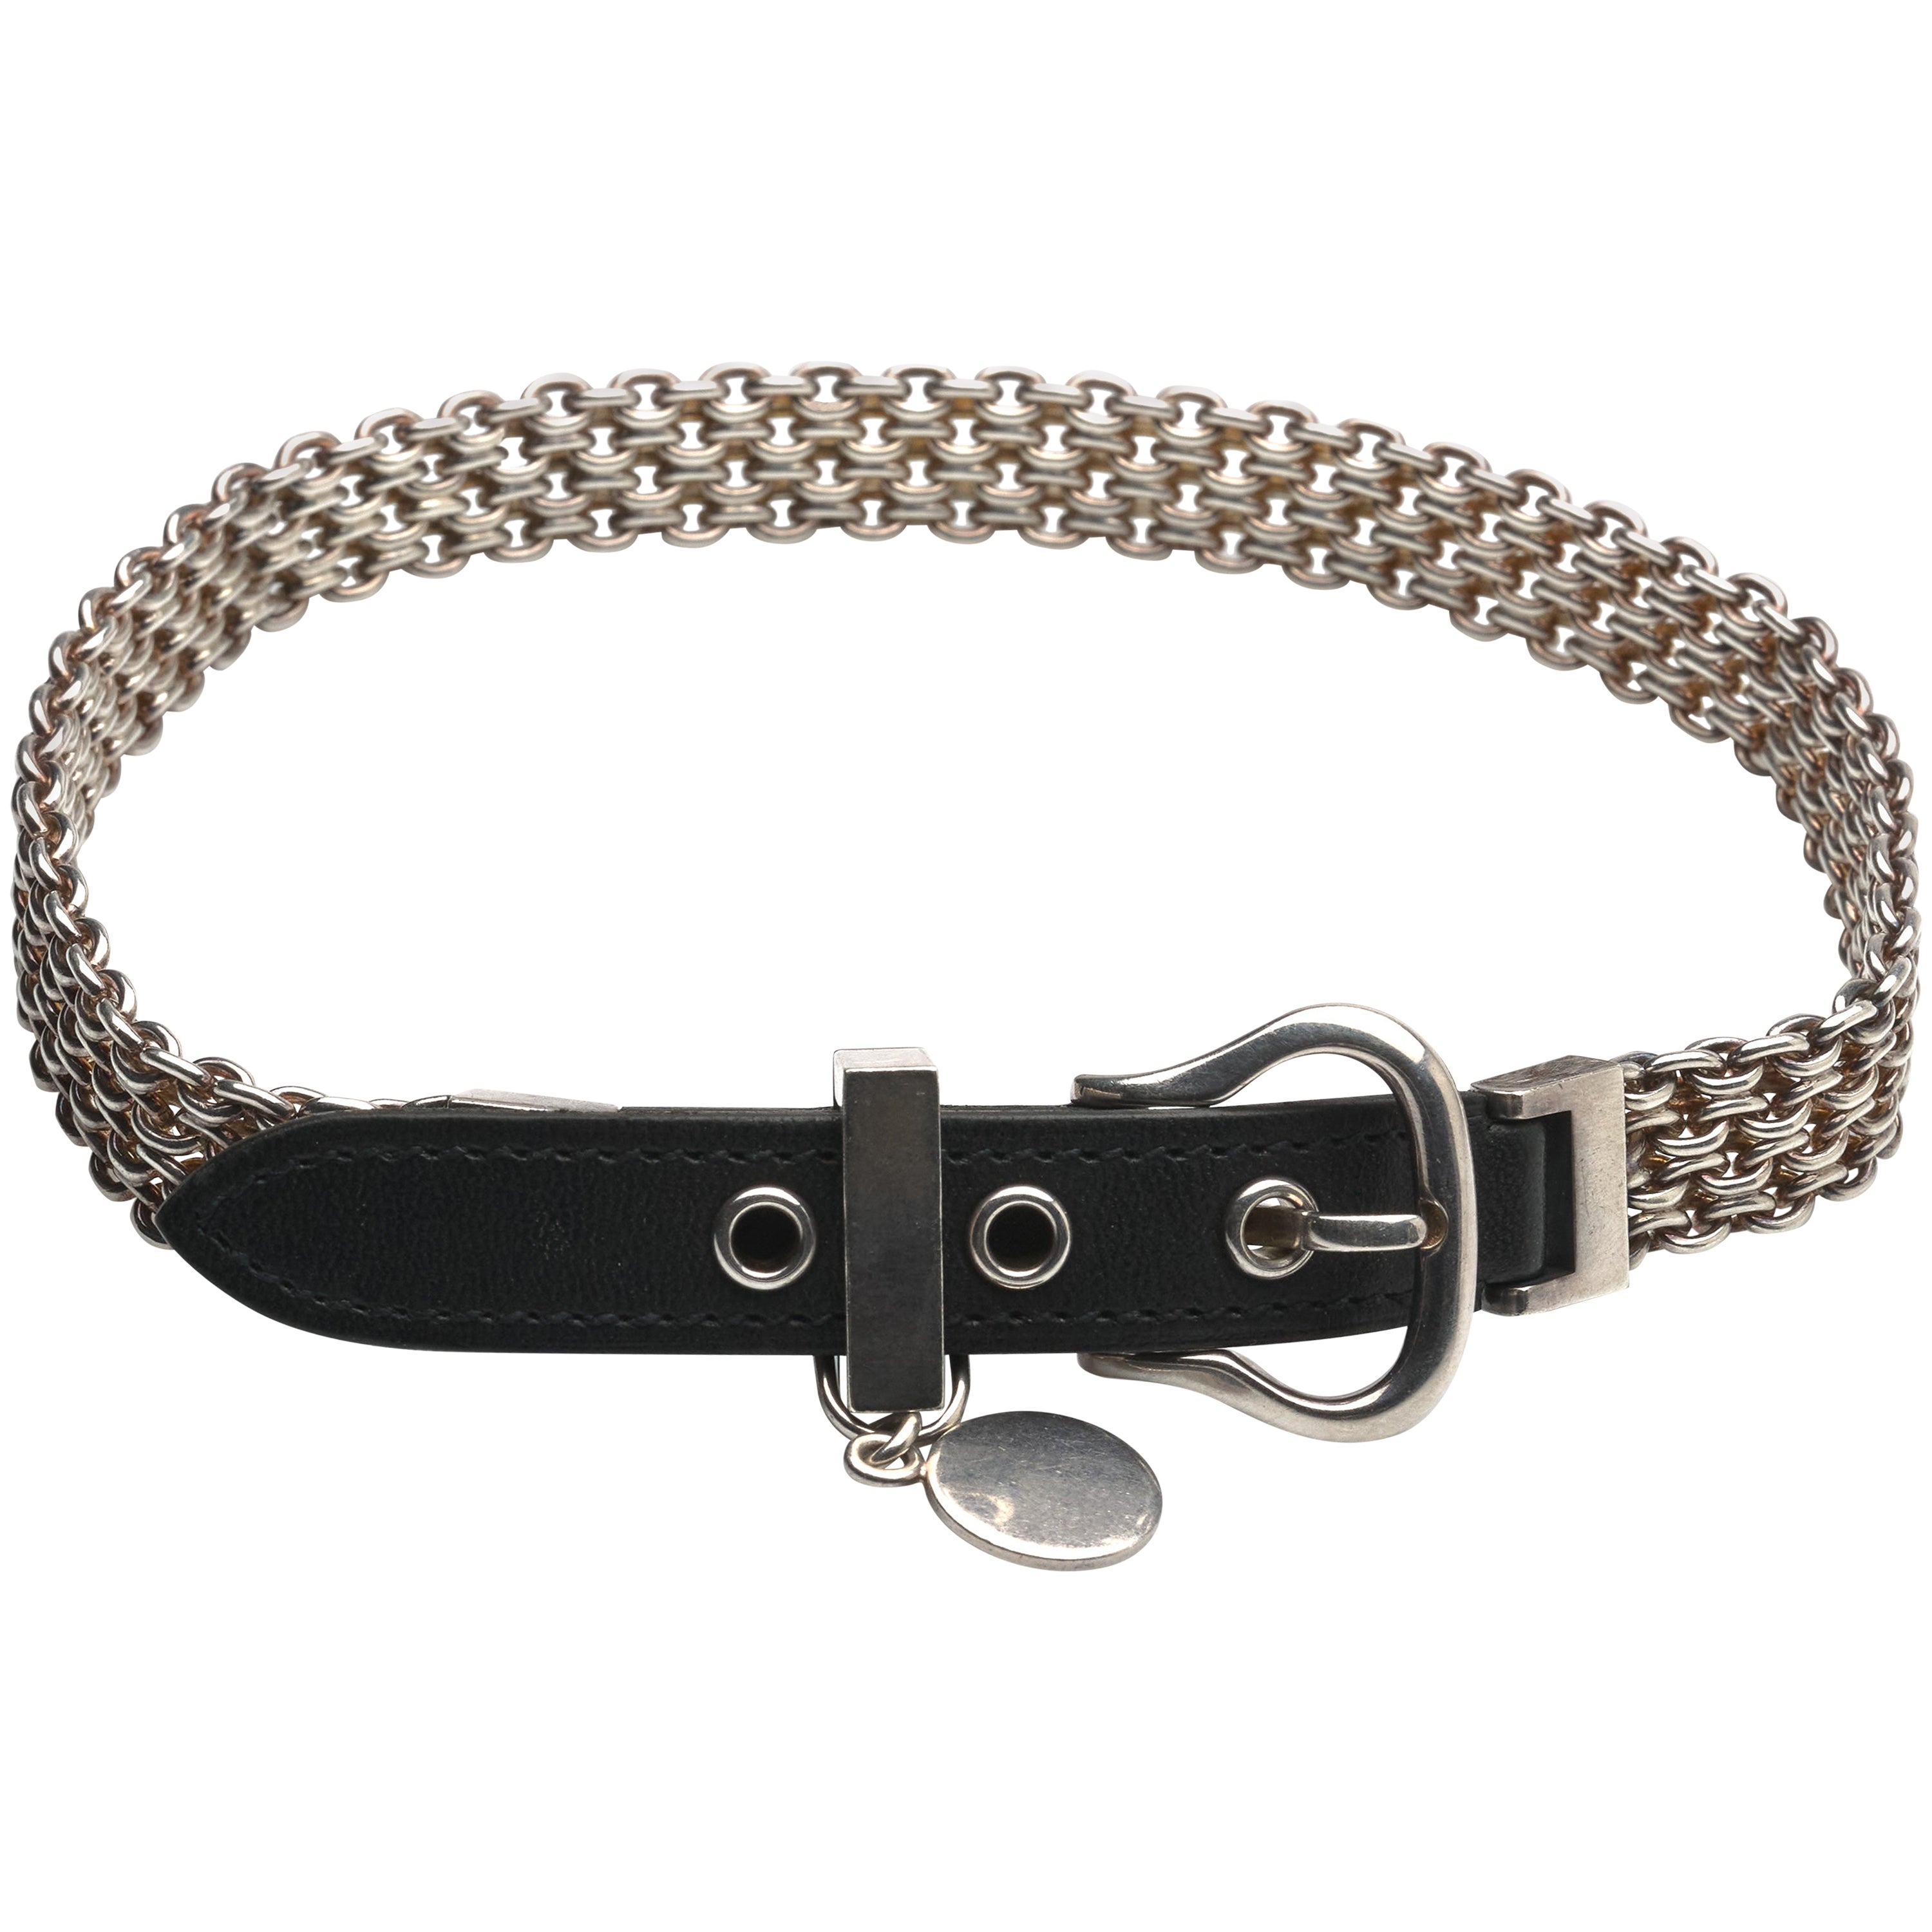 Hermes Sterling Silver and Leather Bracelet